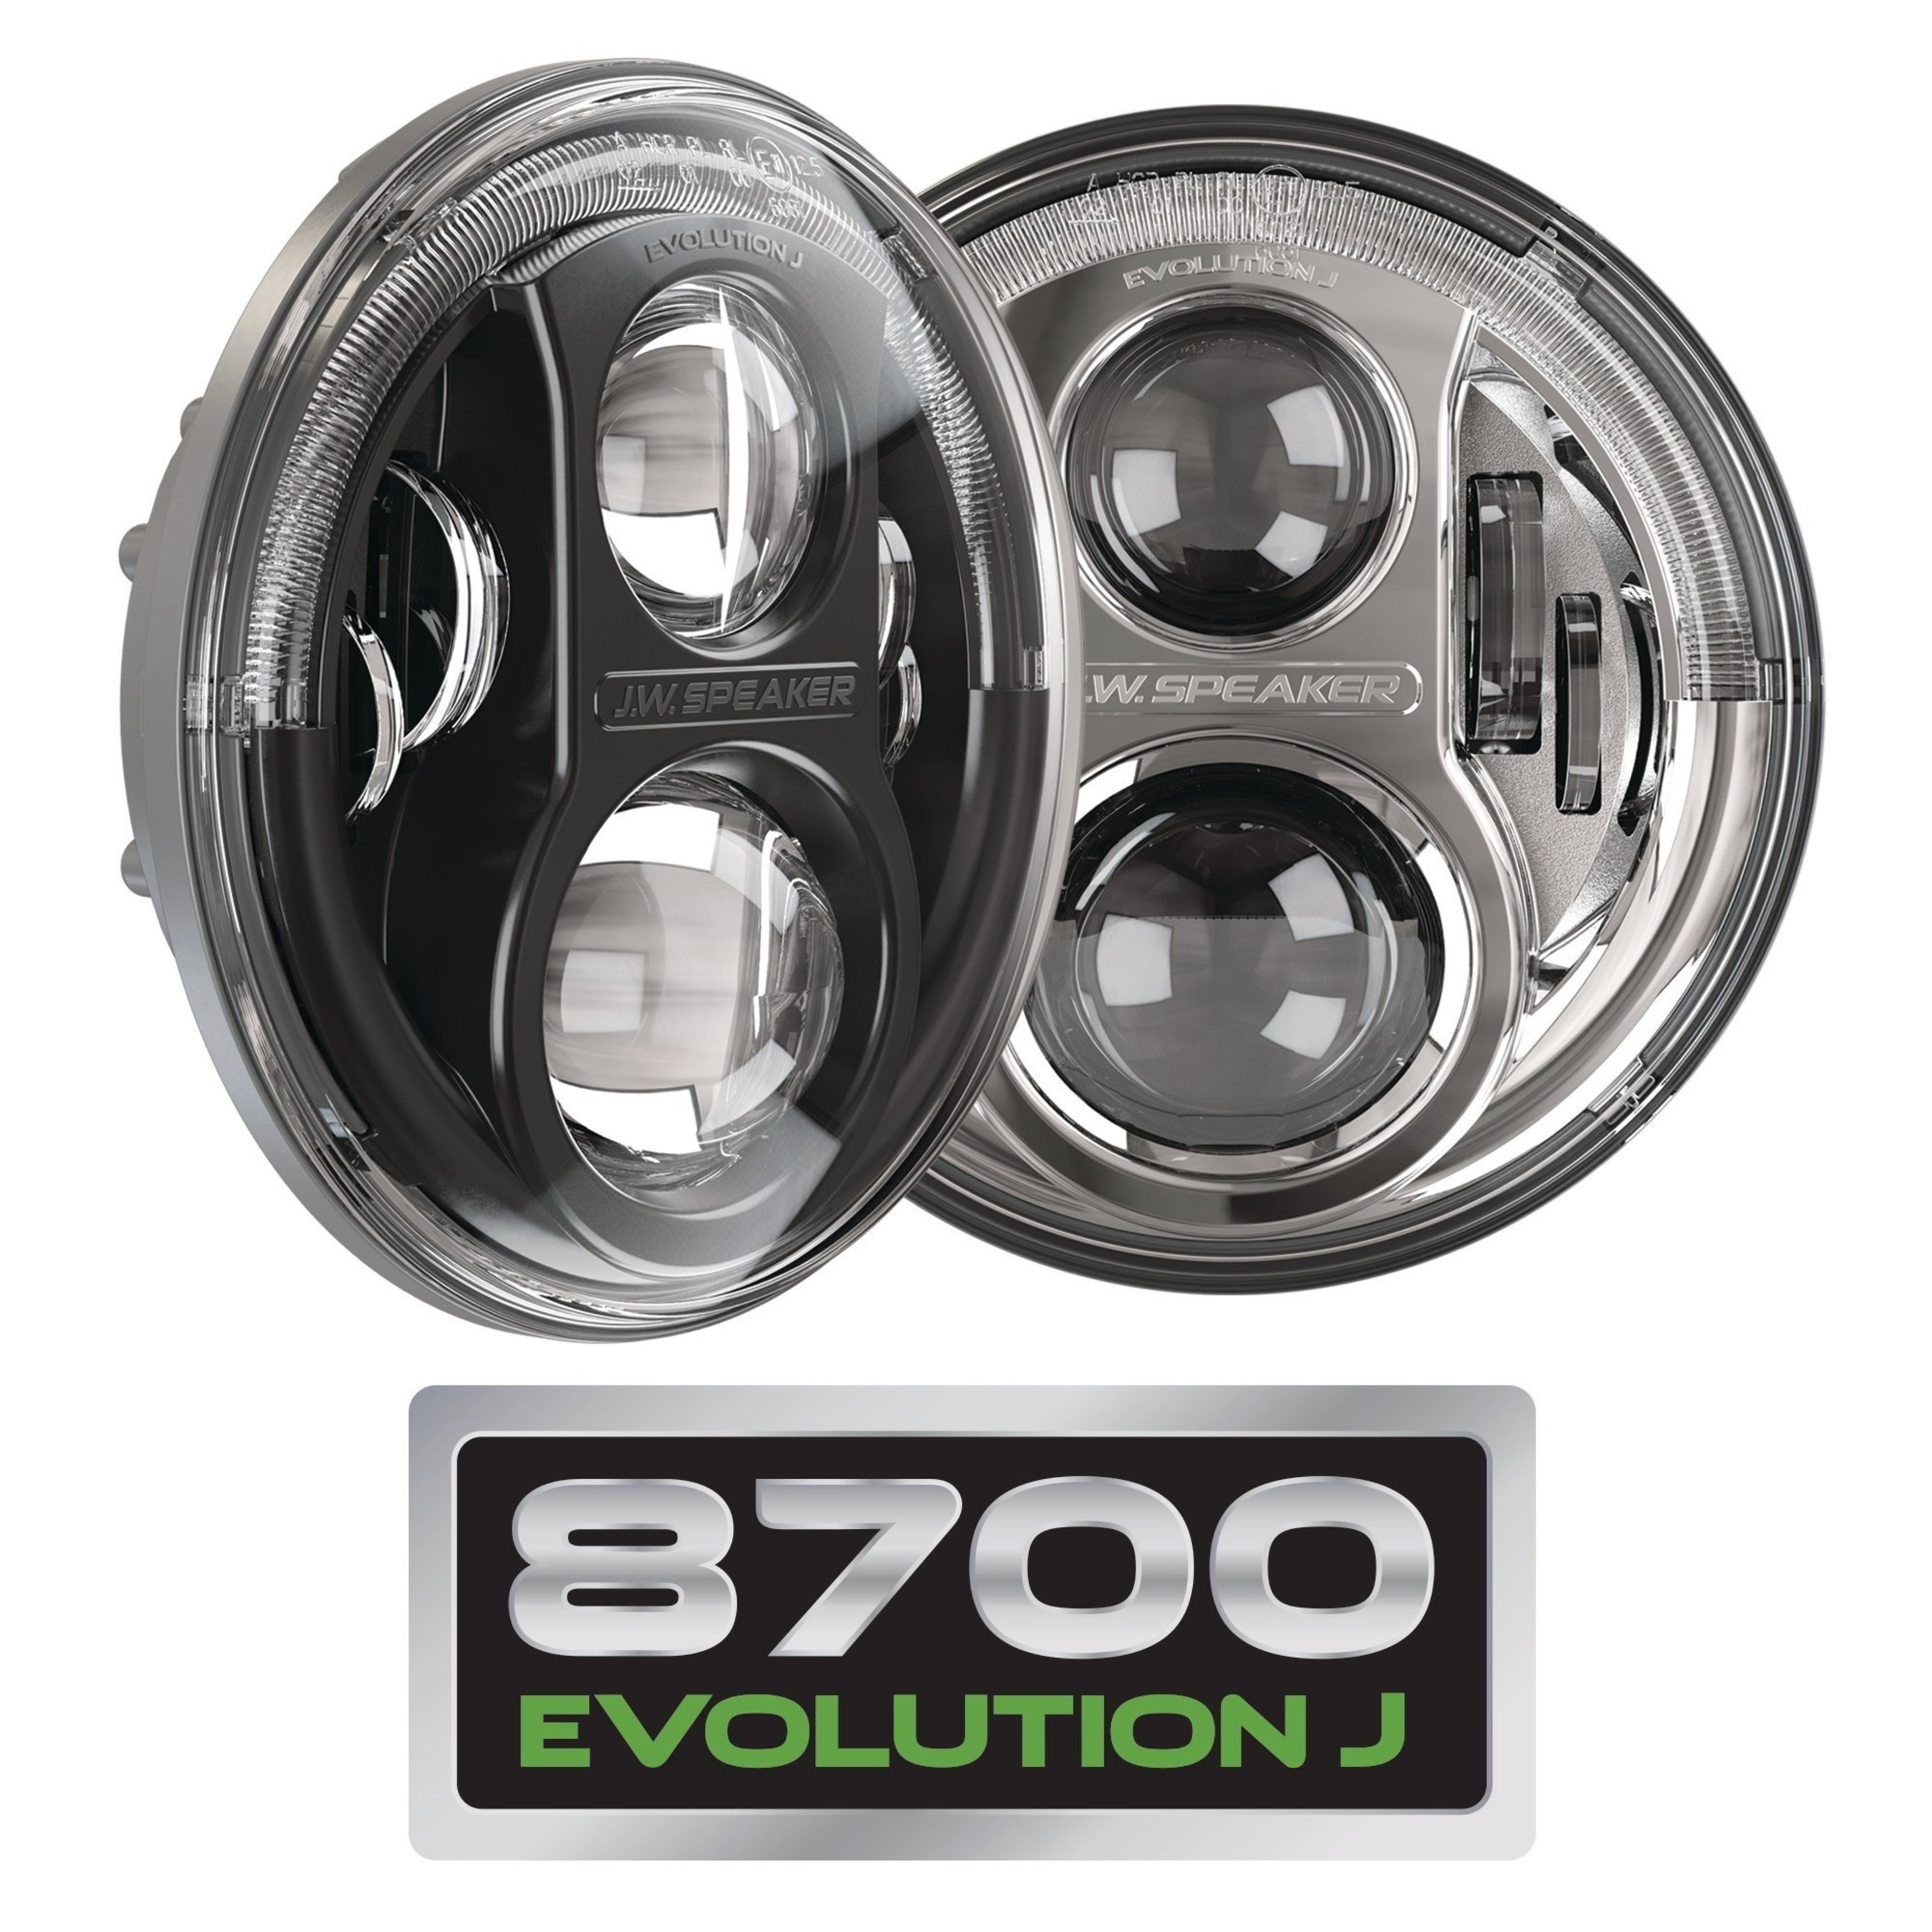 """J.W. Speaker is proud to announce the release of several new, off-road 4x4 LED lighting products coming out this Summer. We have added a new versions of our 7"""" round headlight, 4"""" round fog lights, an all-new tail light, and redesigned auxiliary lights. Photo features our Model 8700 Evolution J LED Jeep Headlights with improved design eliminating the need for an Anti-Flicker Harness. Visit our website to see the full series: www.jwspeaker.com/products/led-worklights-model-518/1300392/"""